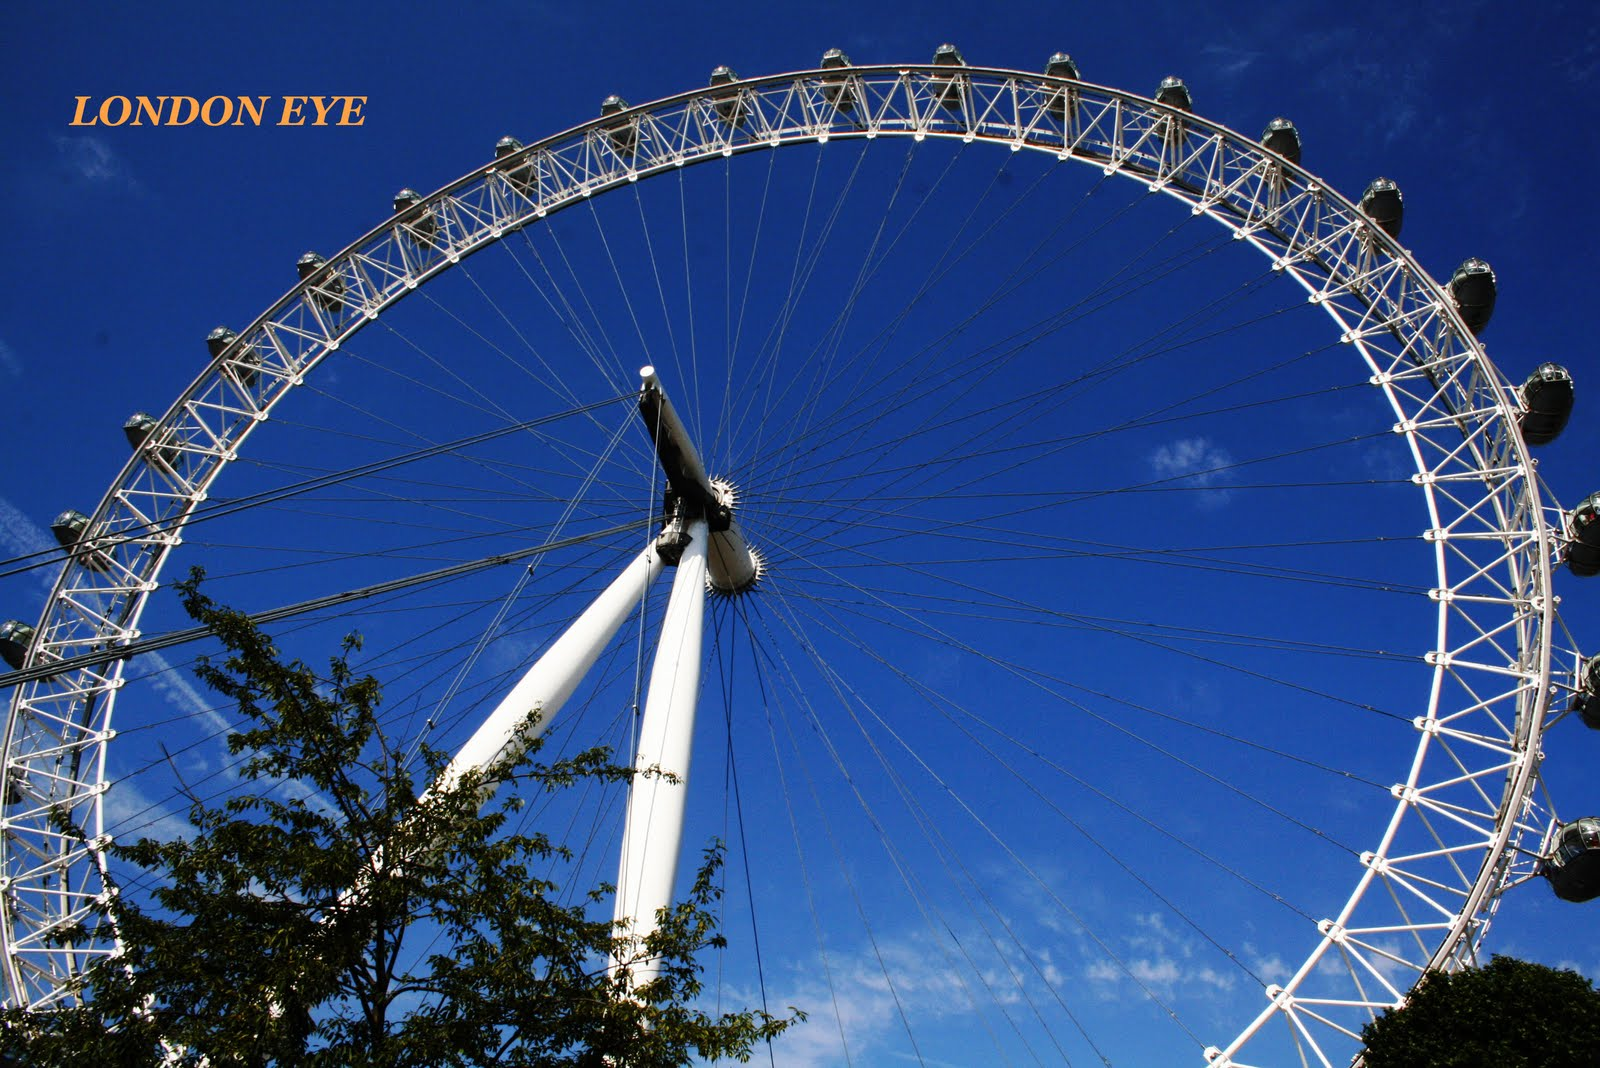 Cucina Restaurant London Eye Food And The City Londra